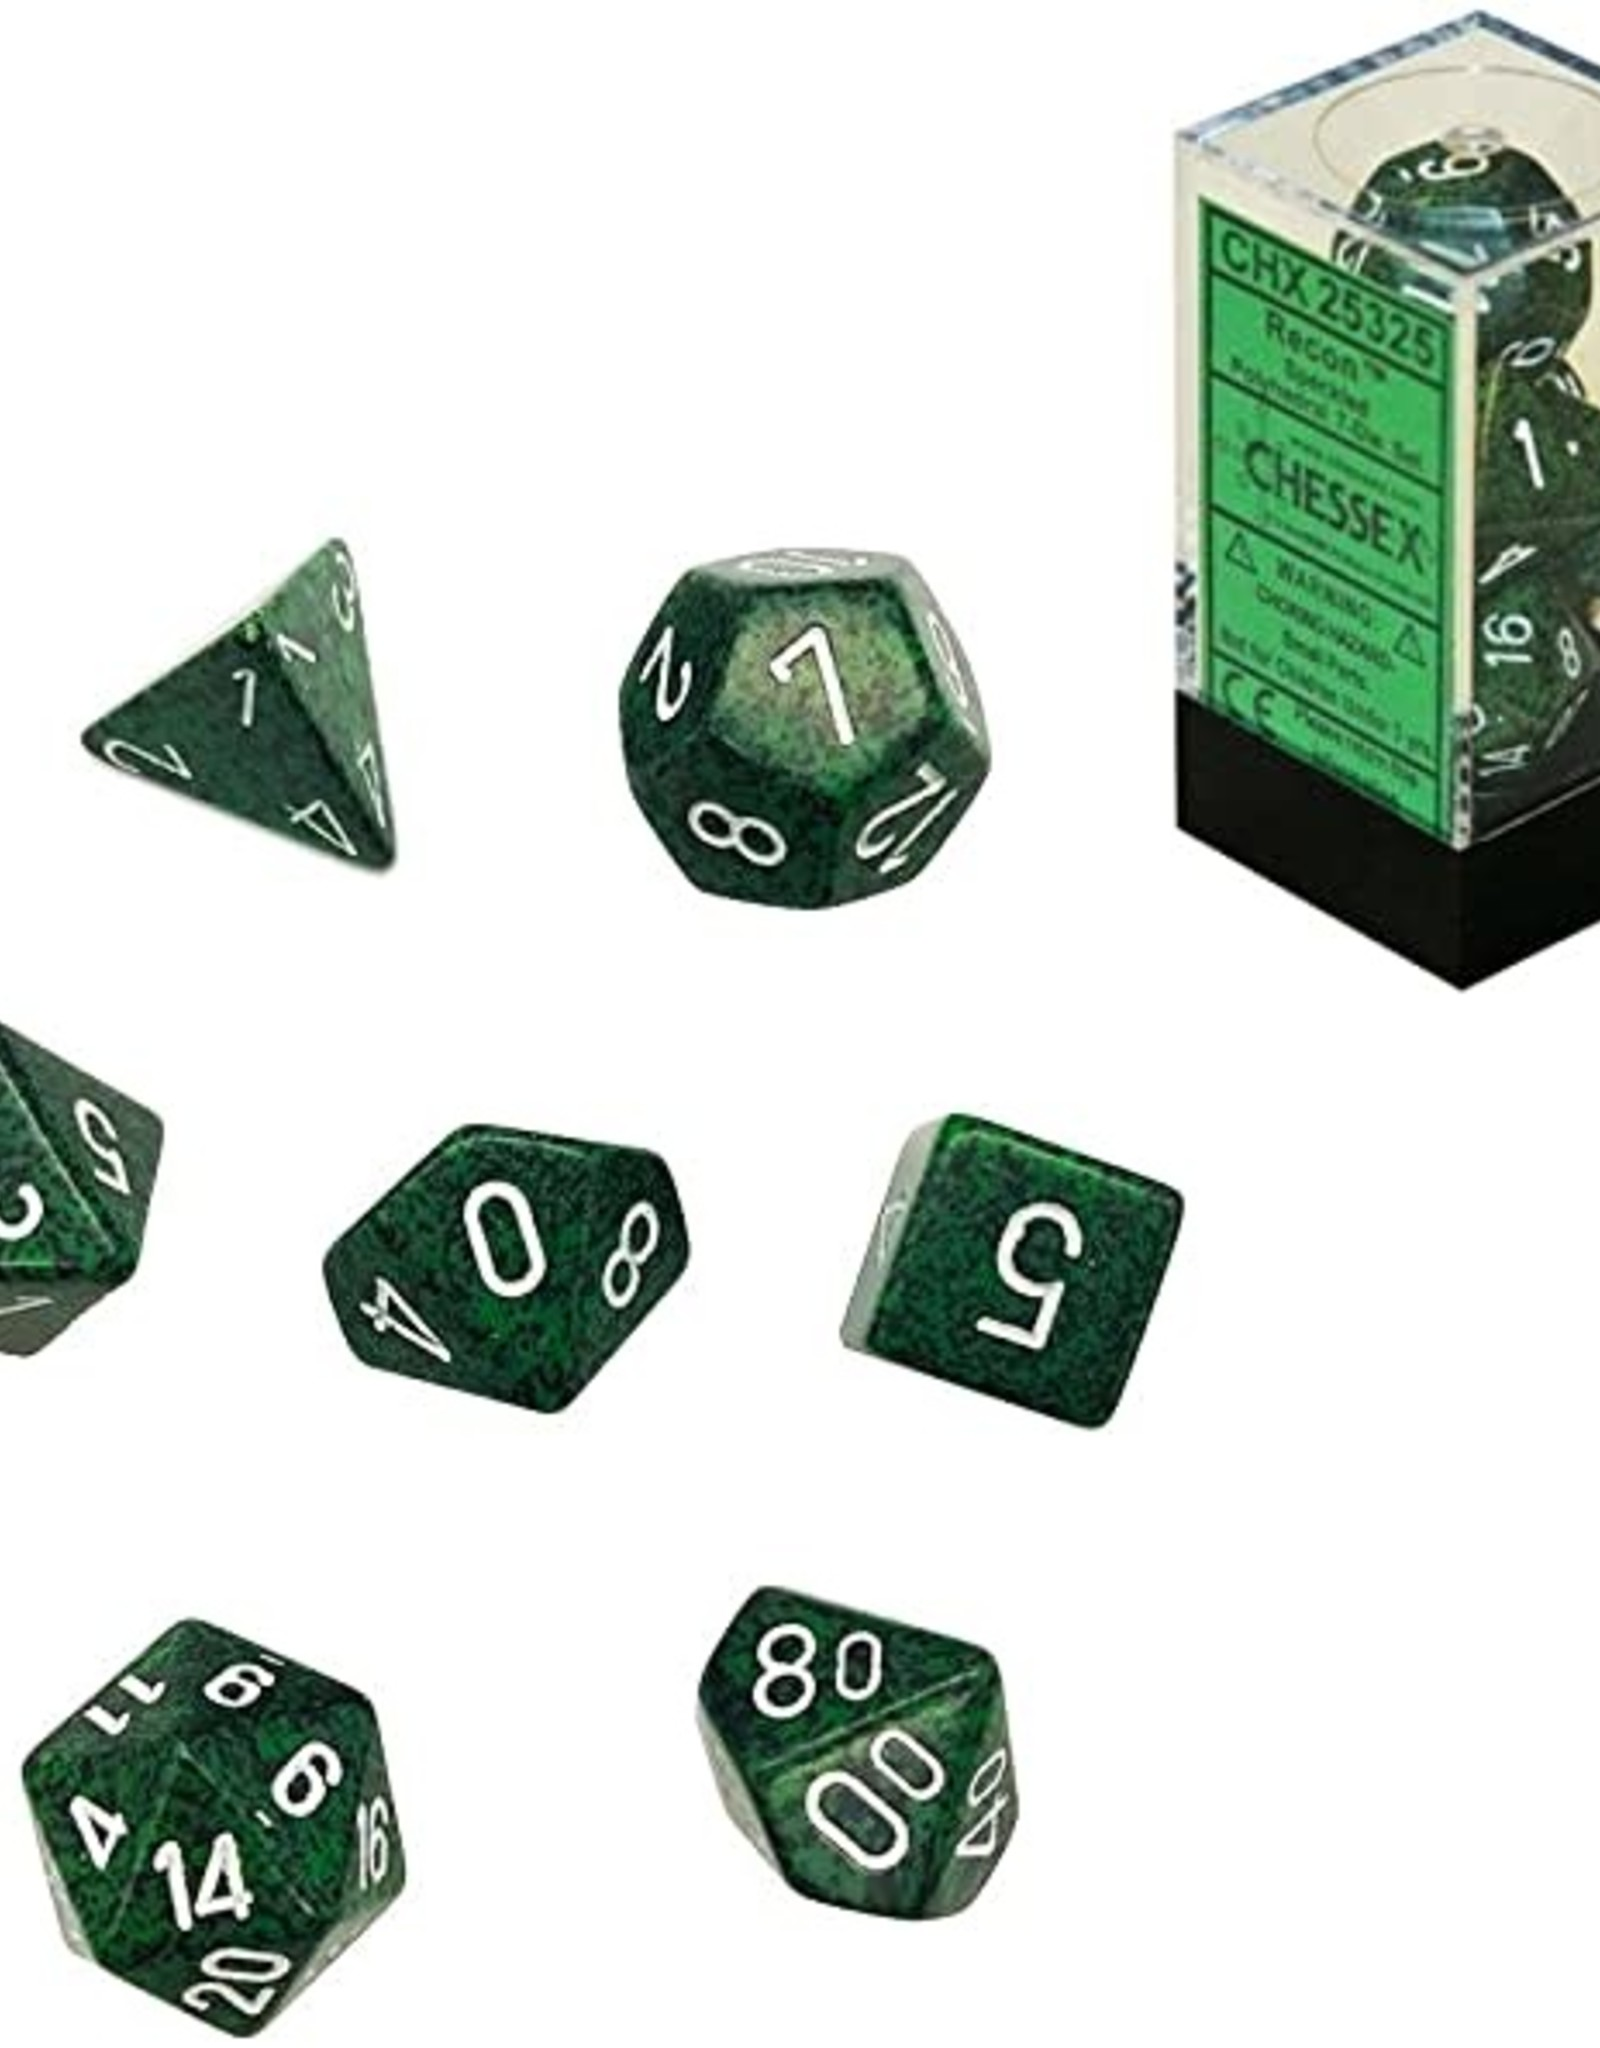 Chessex Speckled Poly 7 set: Recon